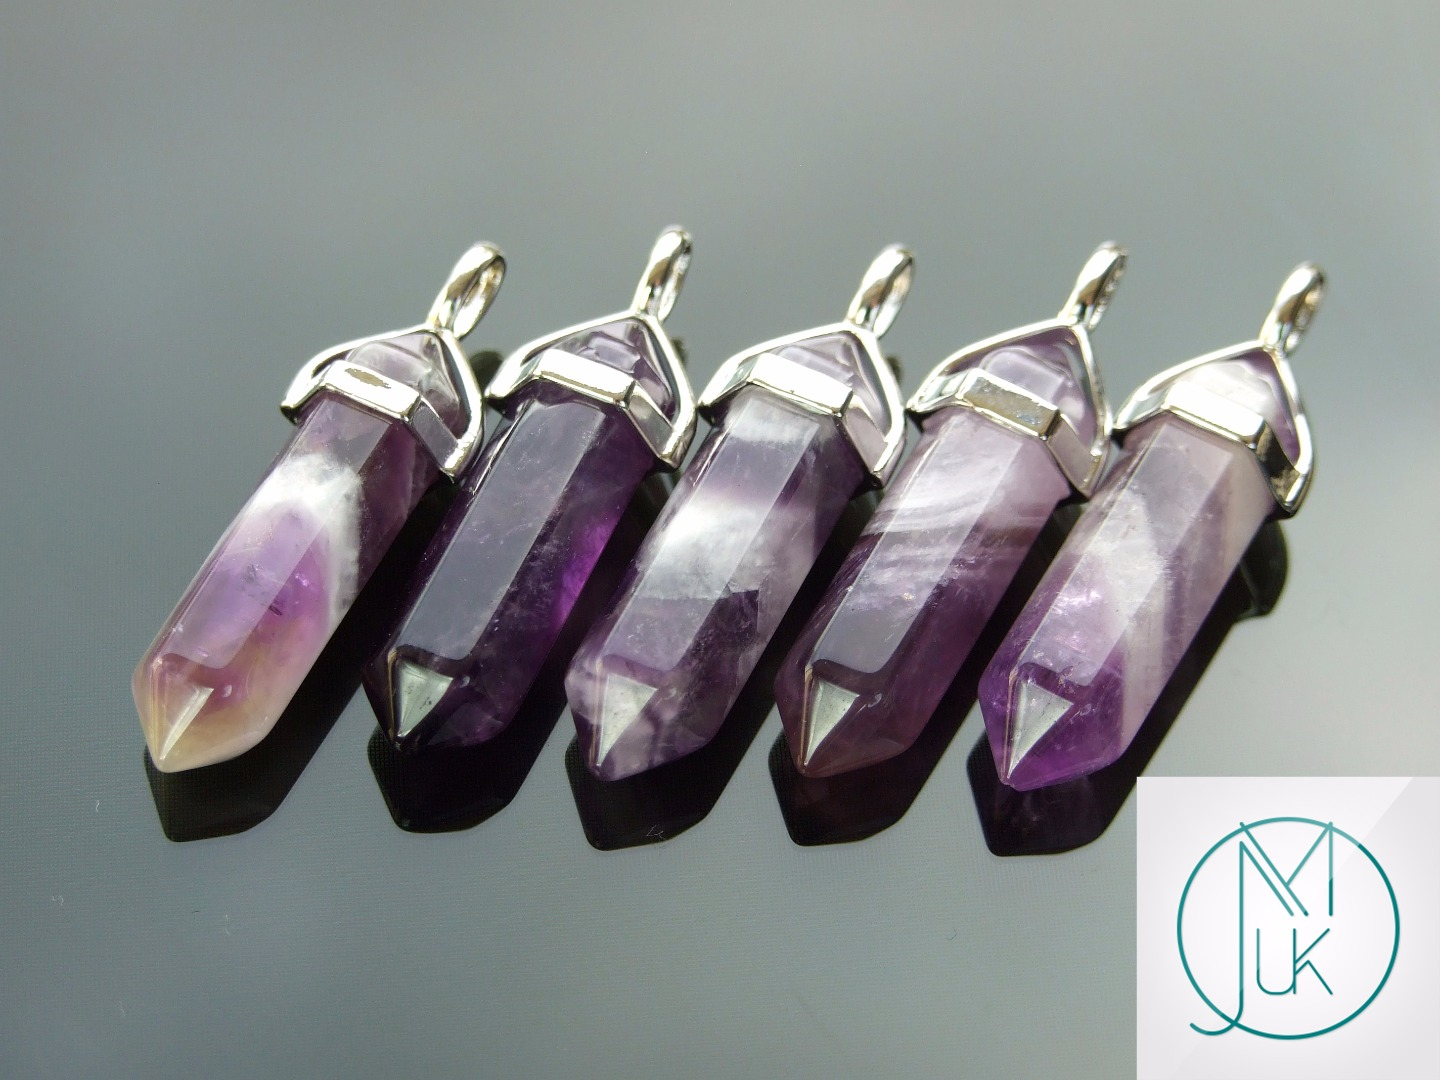 Gemstone-Pendant-for-Necklace-Manmade-or-Natural-Quartz-Crystal-Healing-Stone thumbnail 13